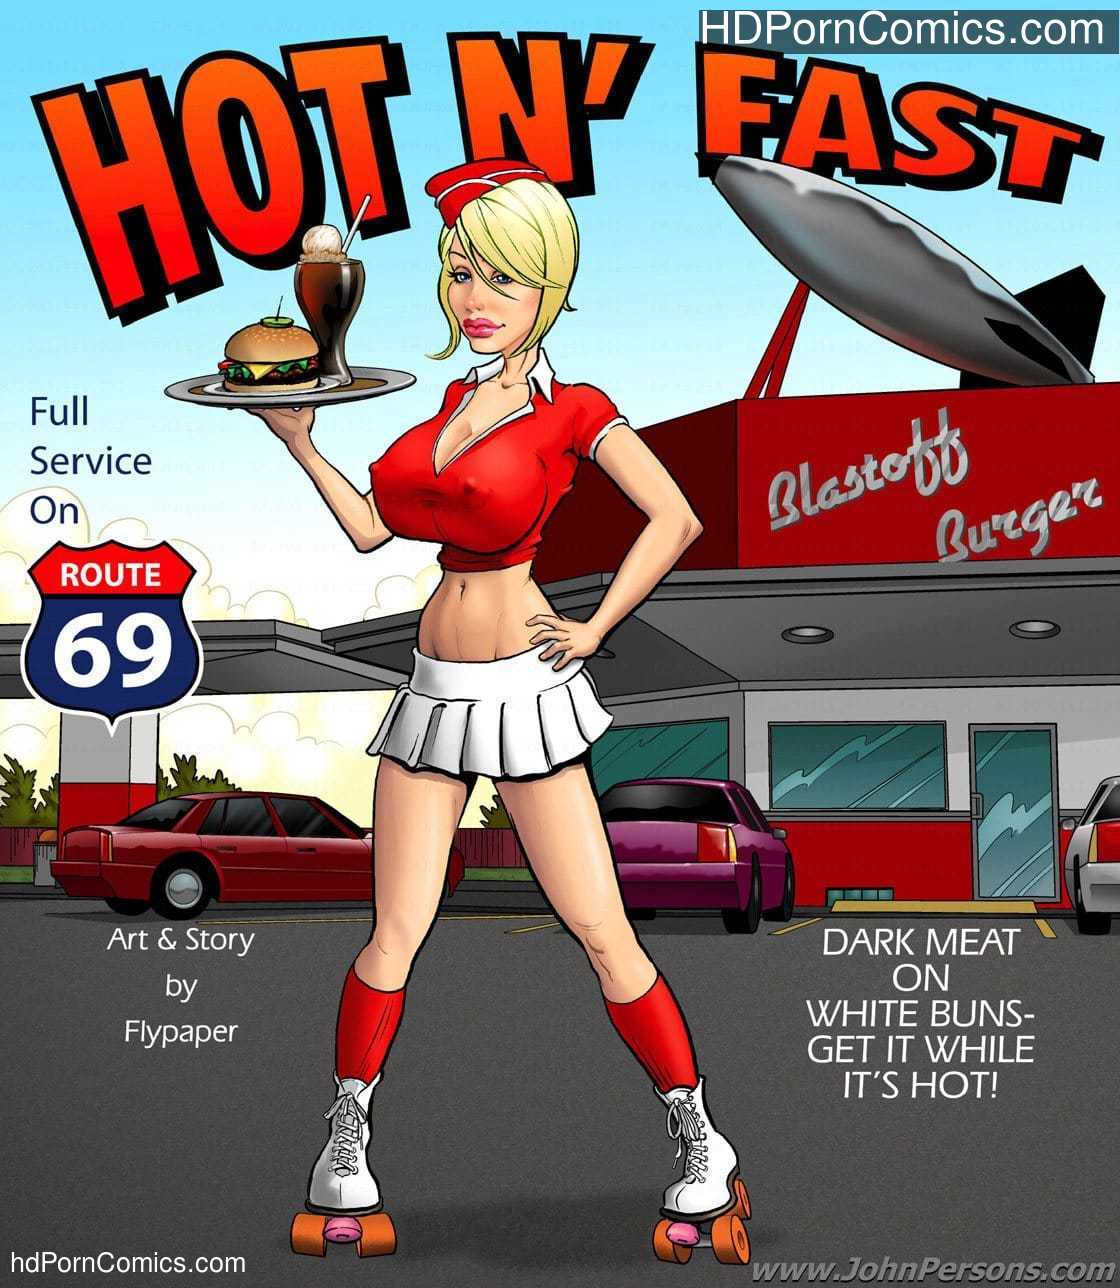 HOT N FAST – Porncomics free Porn Comic